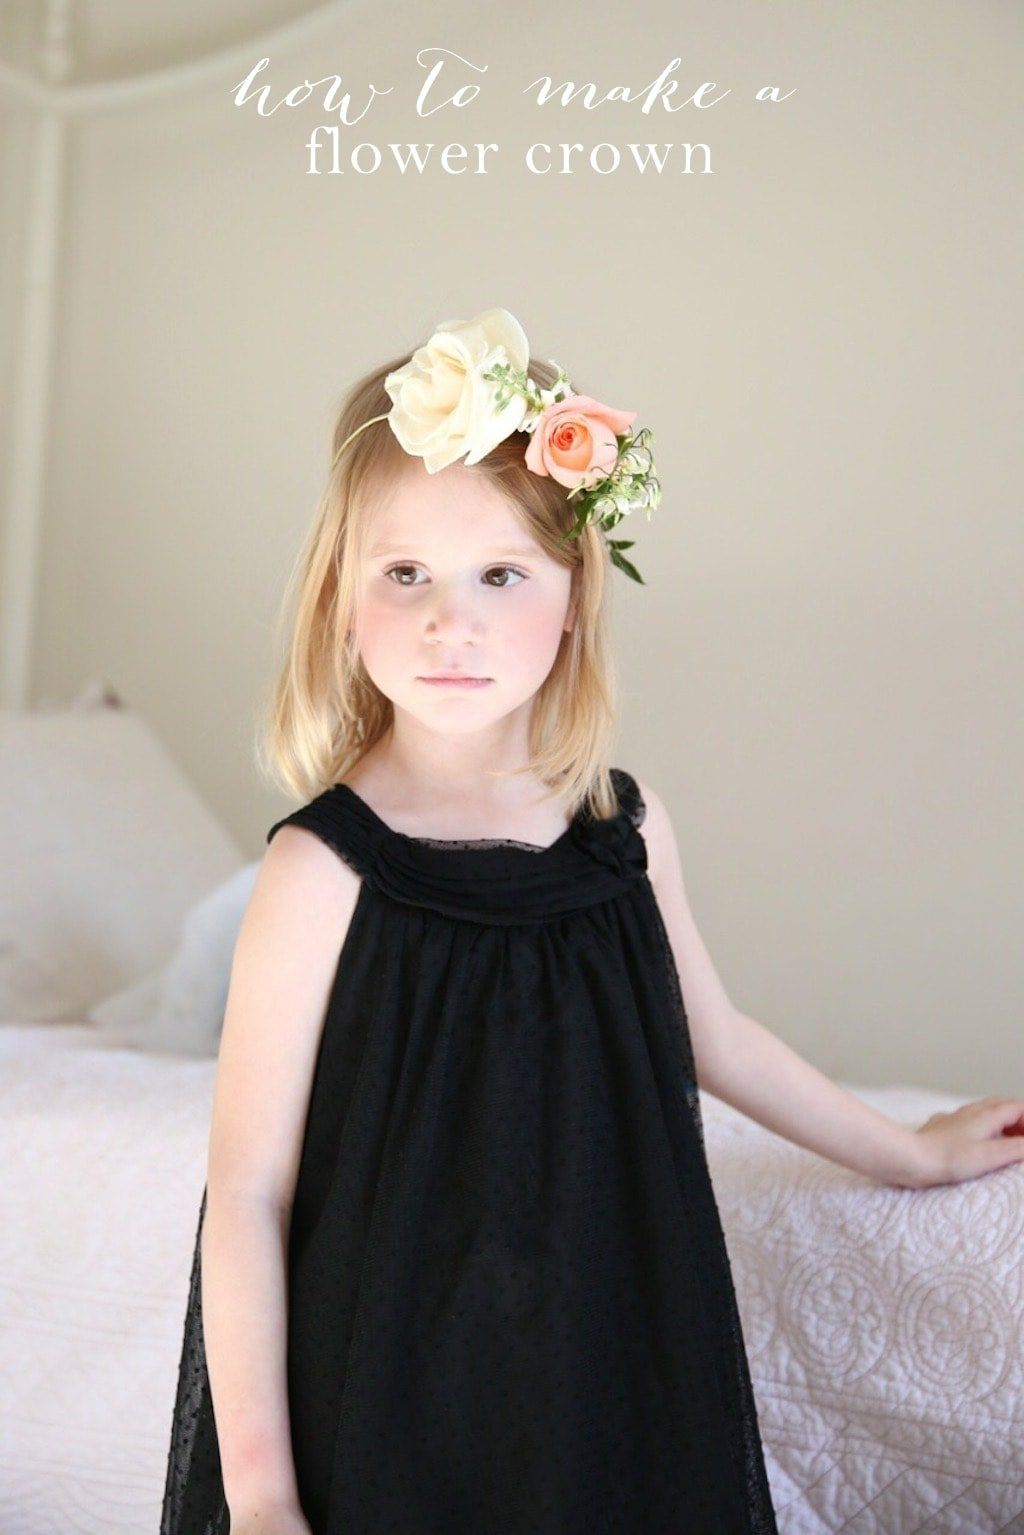 Diy flower crown tutorial diy flower crown izmirmasajfo